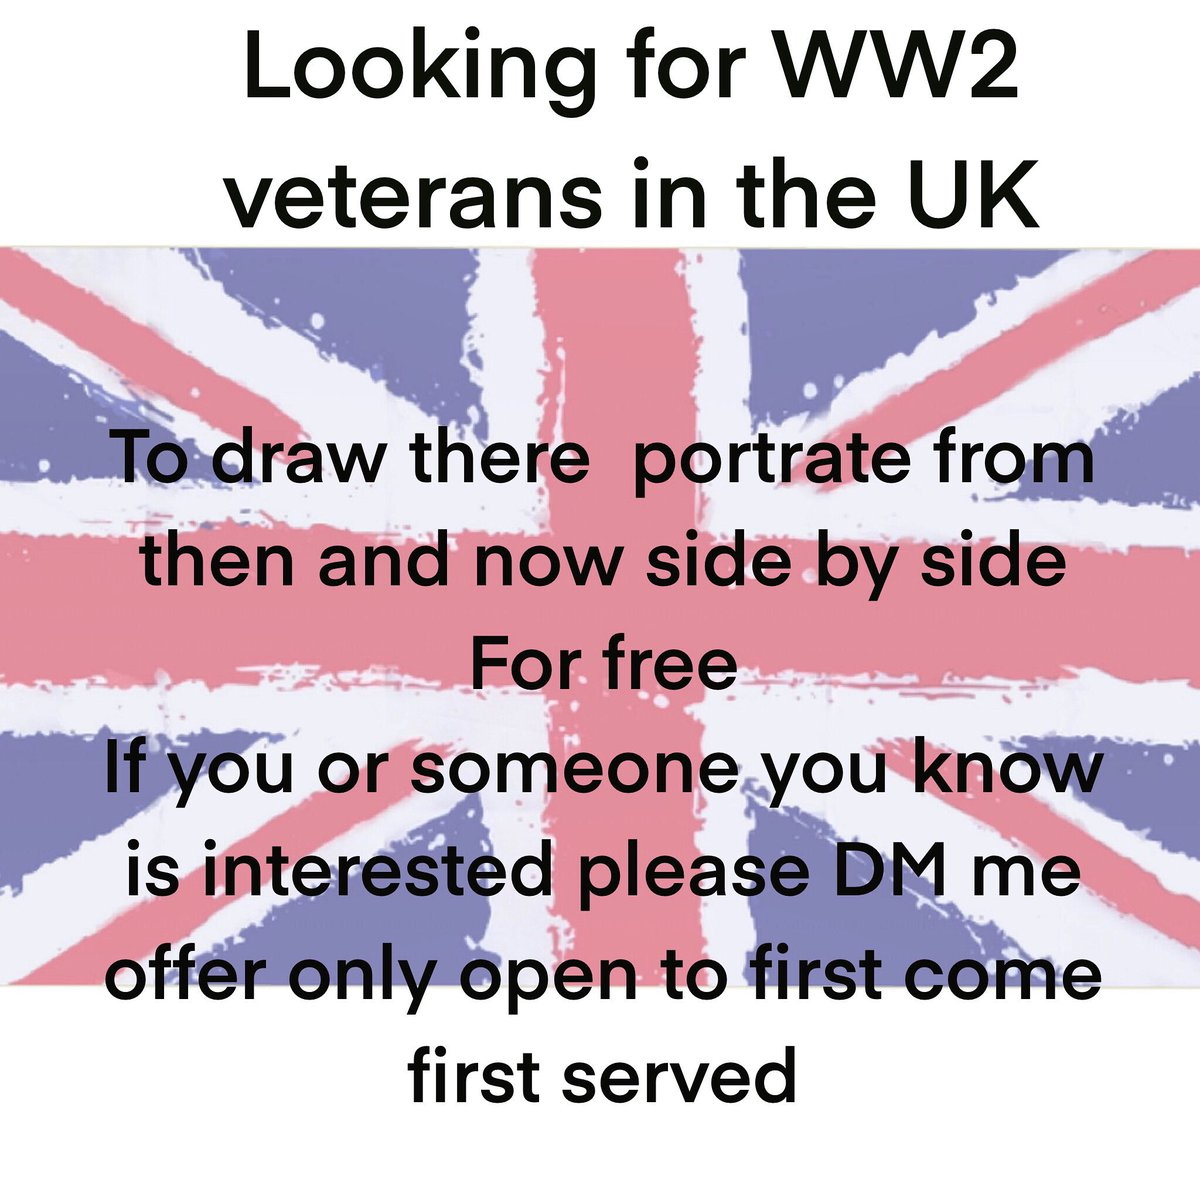 Im looking for a ww2 UK veteran to draw there portrait side by side from then and now for free  in celebration of 75years  please if you know anyone DM me who would love this as a gift me first come first served !! #portraits #veday #ww2veteran #ww2history #ww2uk #ww2art #veday75